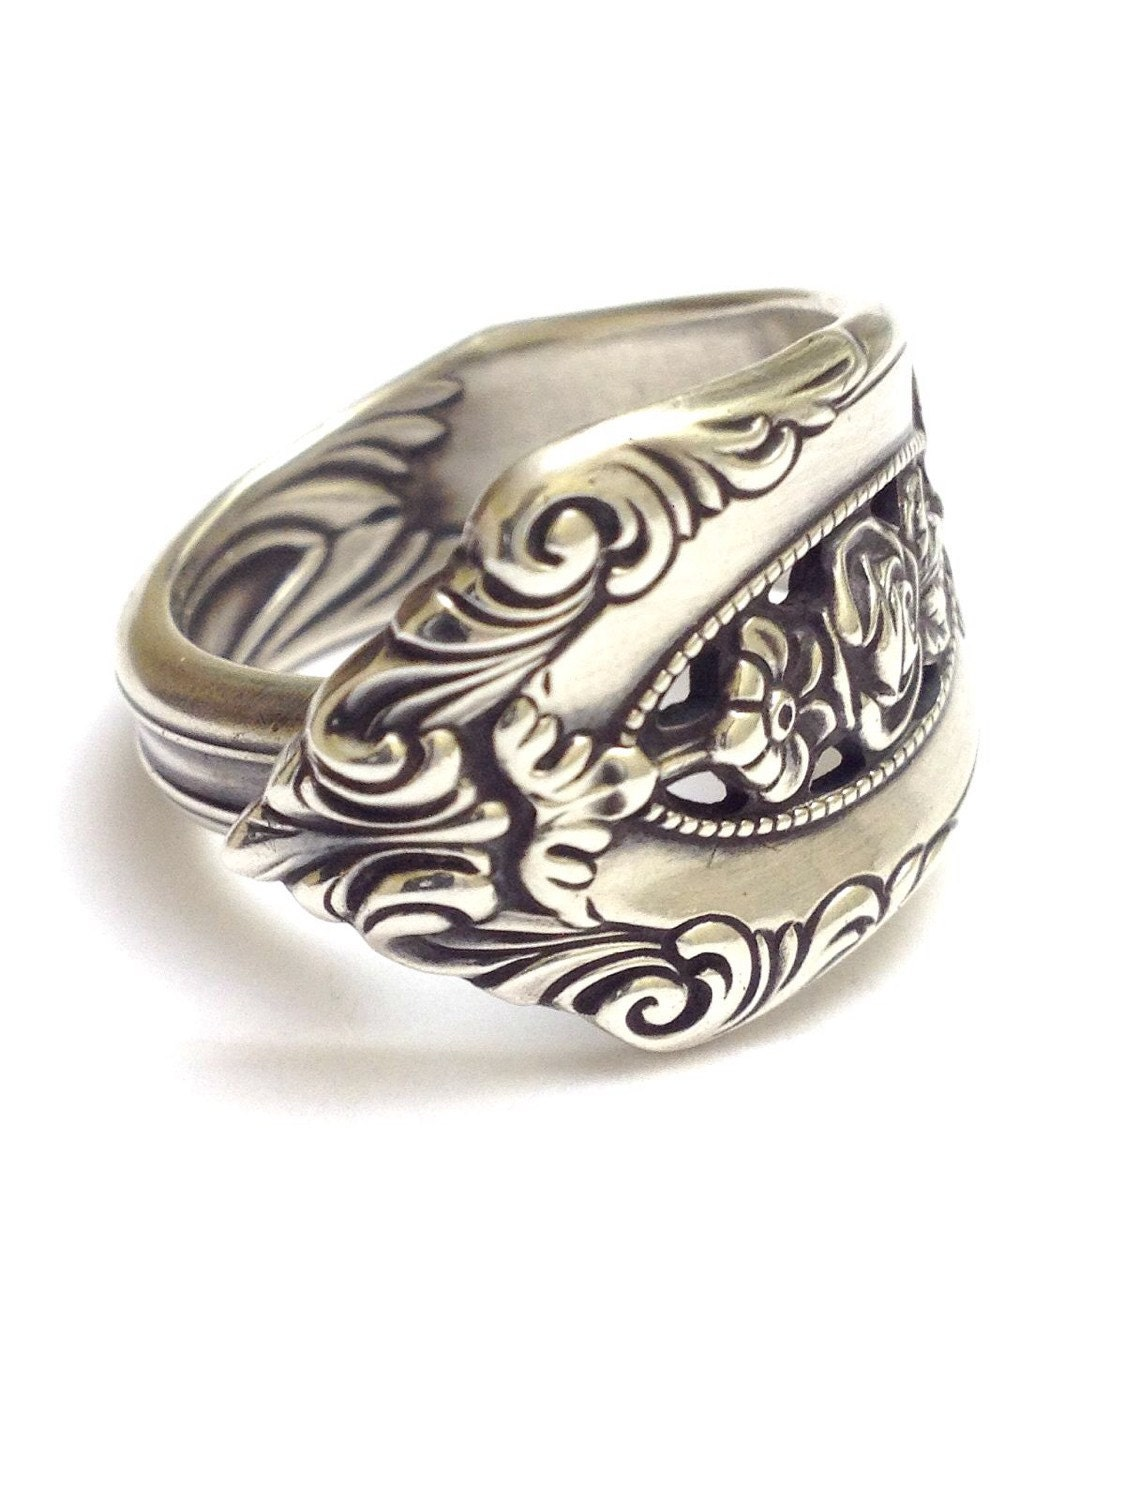 sterling silver spoon ring circa 1934 by cypressstudio on etsy